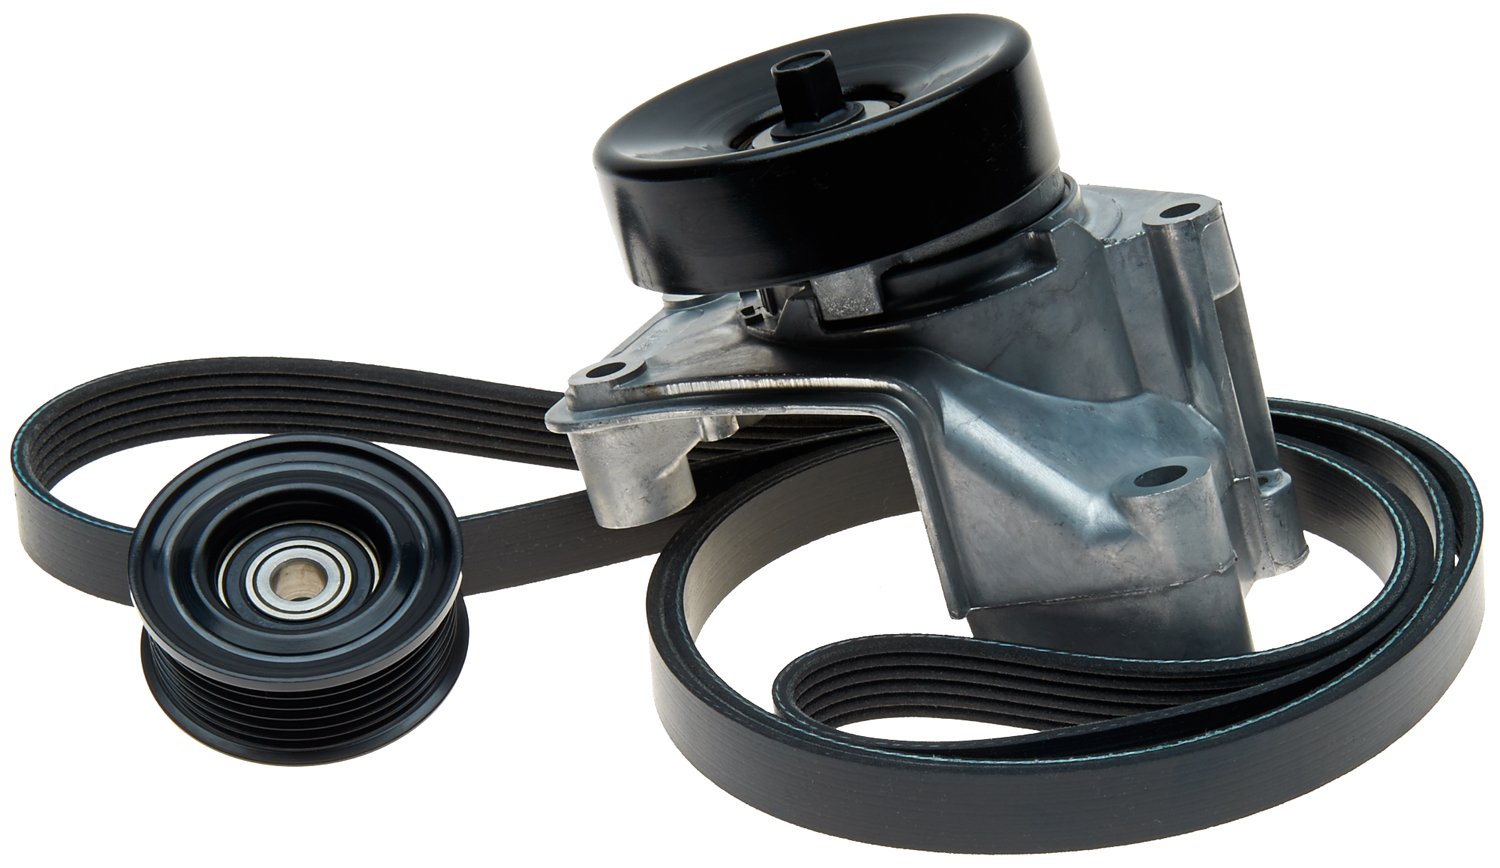 ACDelco ACK060882K1 Professional Automatic Belt Tensioner and Pulley Kit with Tensioner, Pulley, and Belt by ACDelco